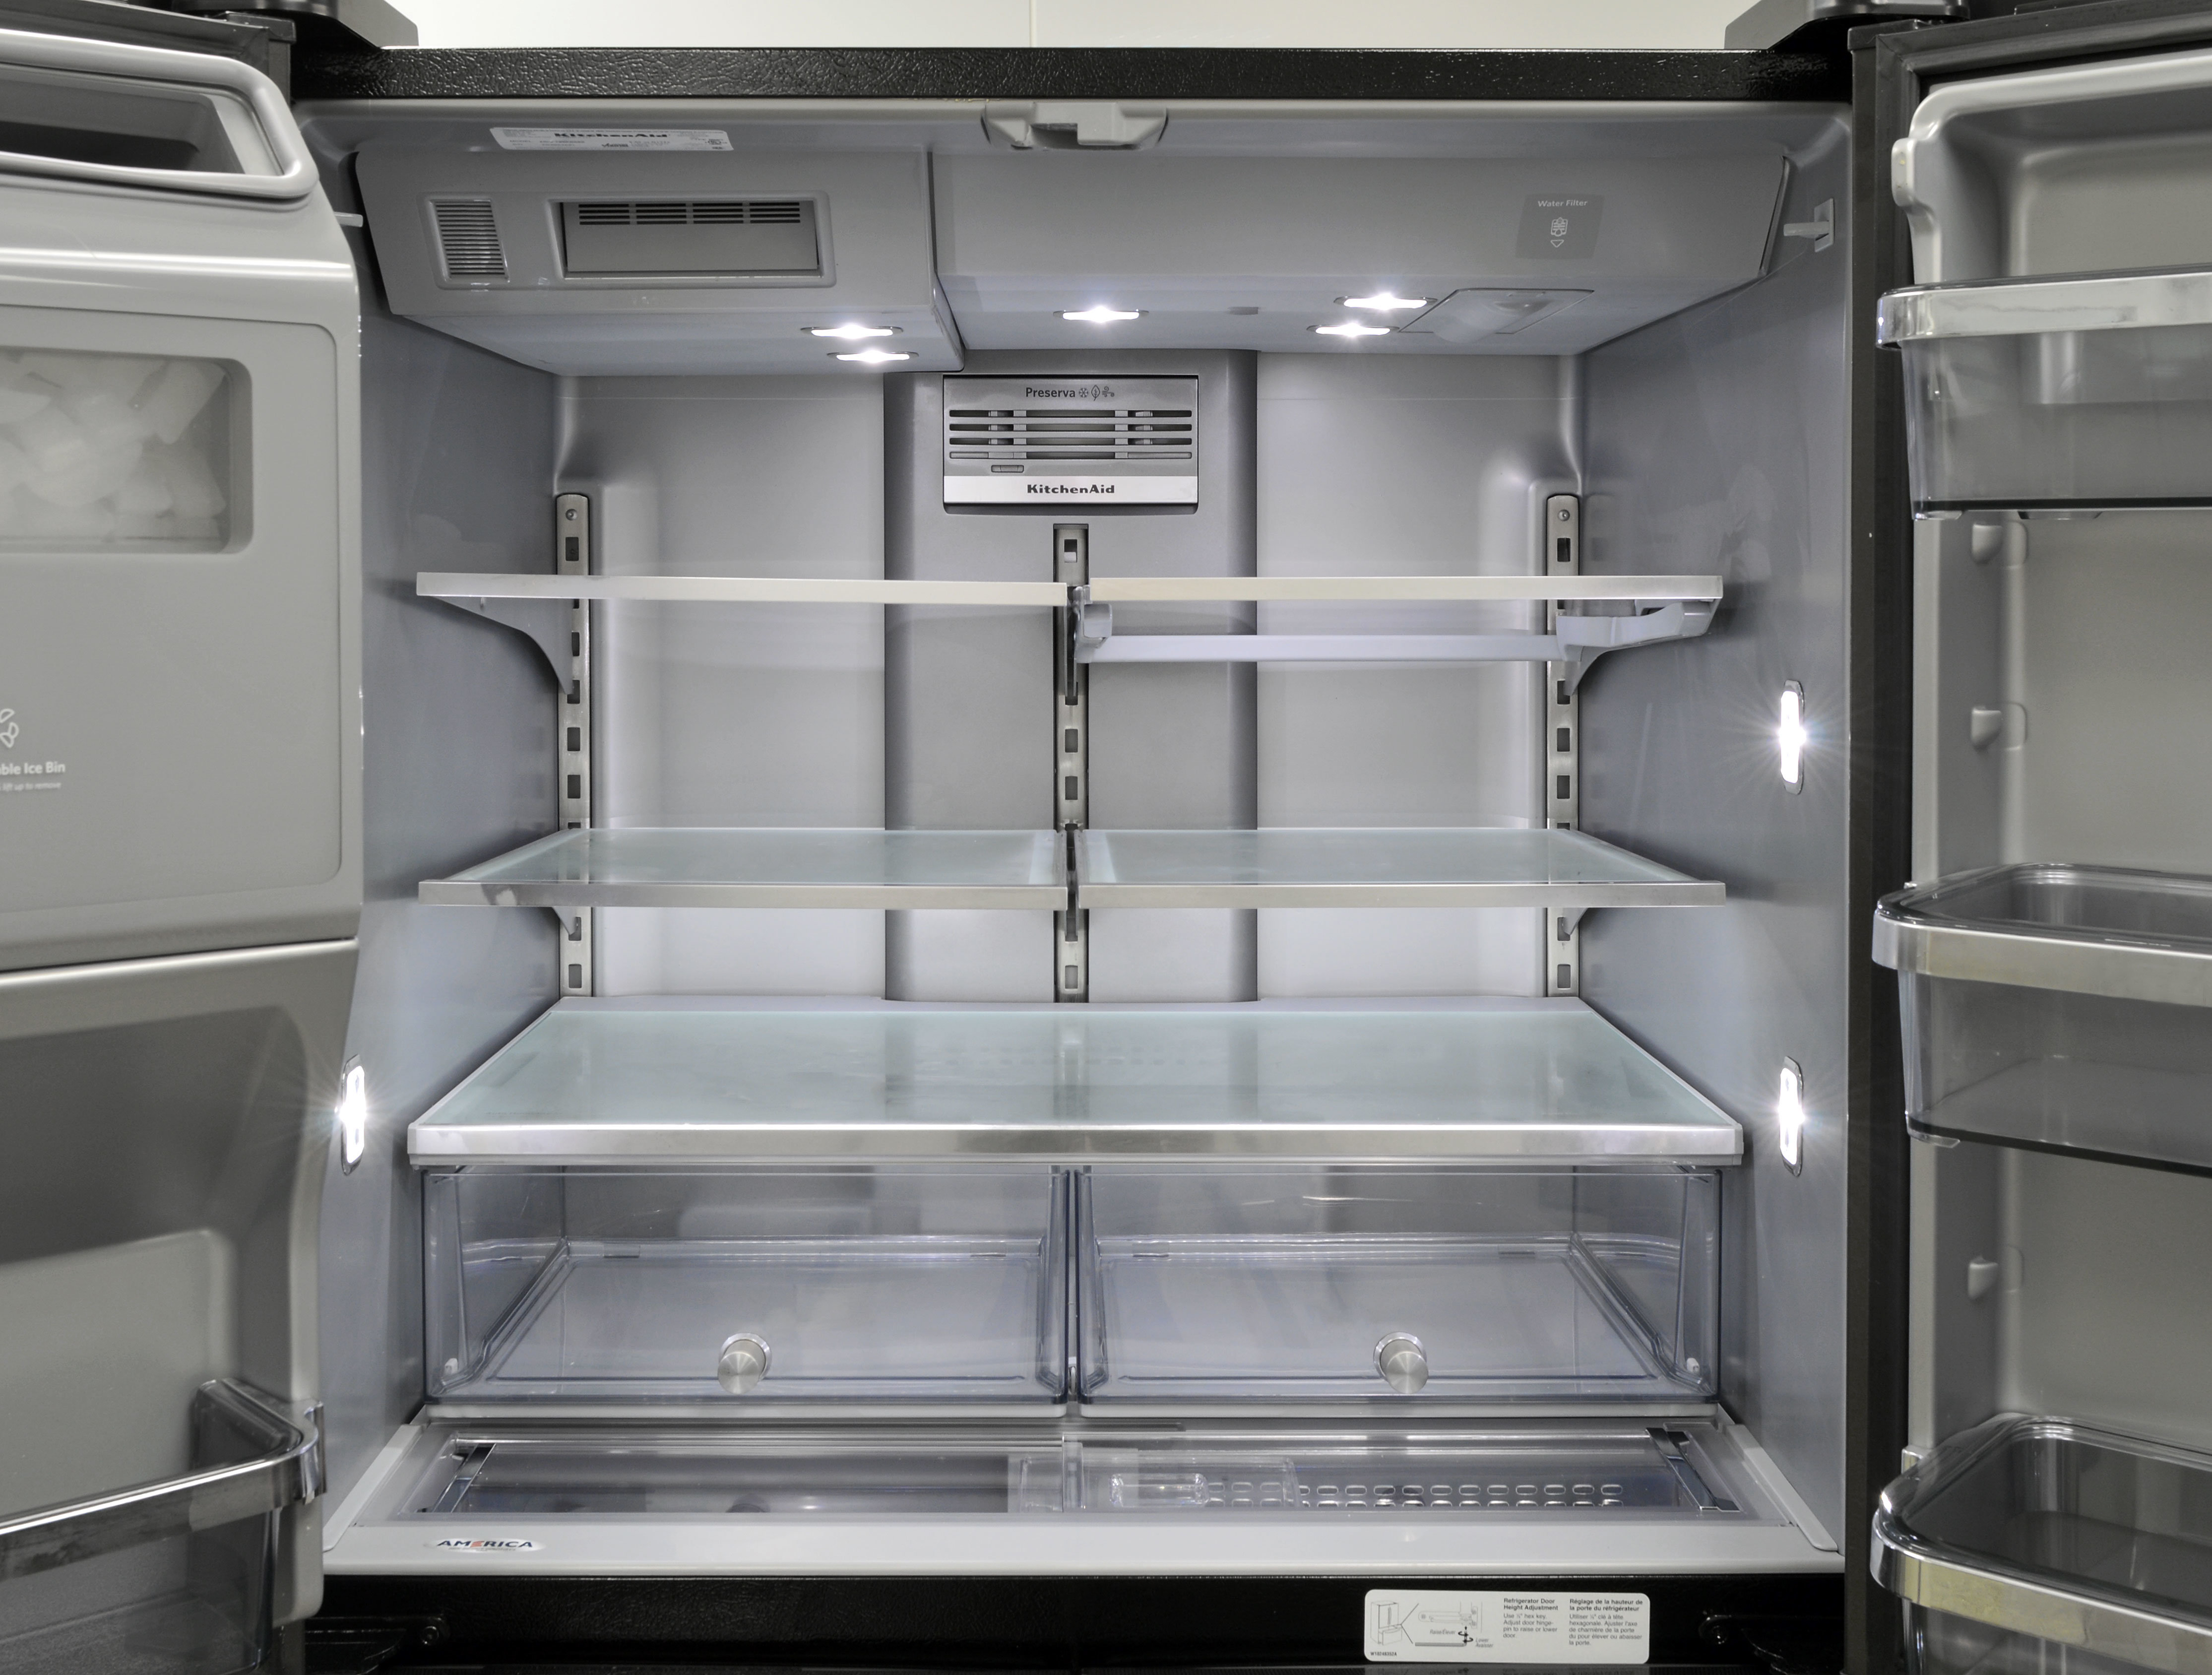 Kitchenaid Krmf706ebs Refrigerator Review Reviewed Com